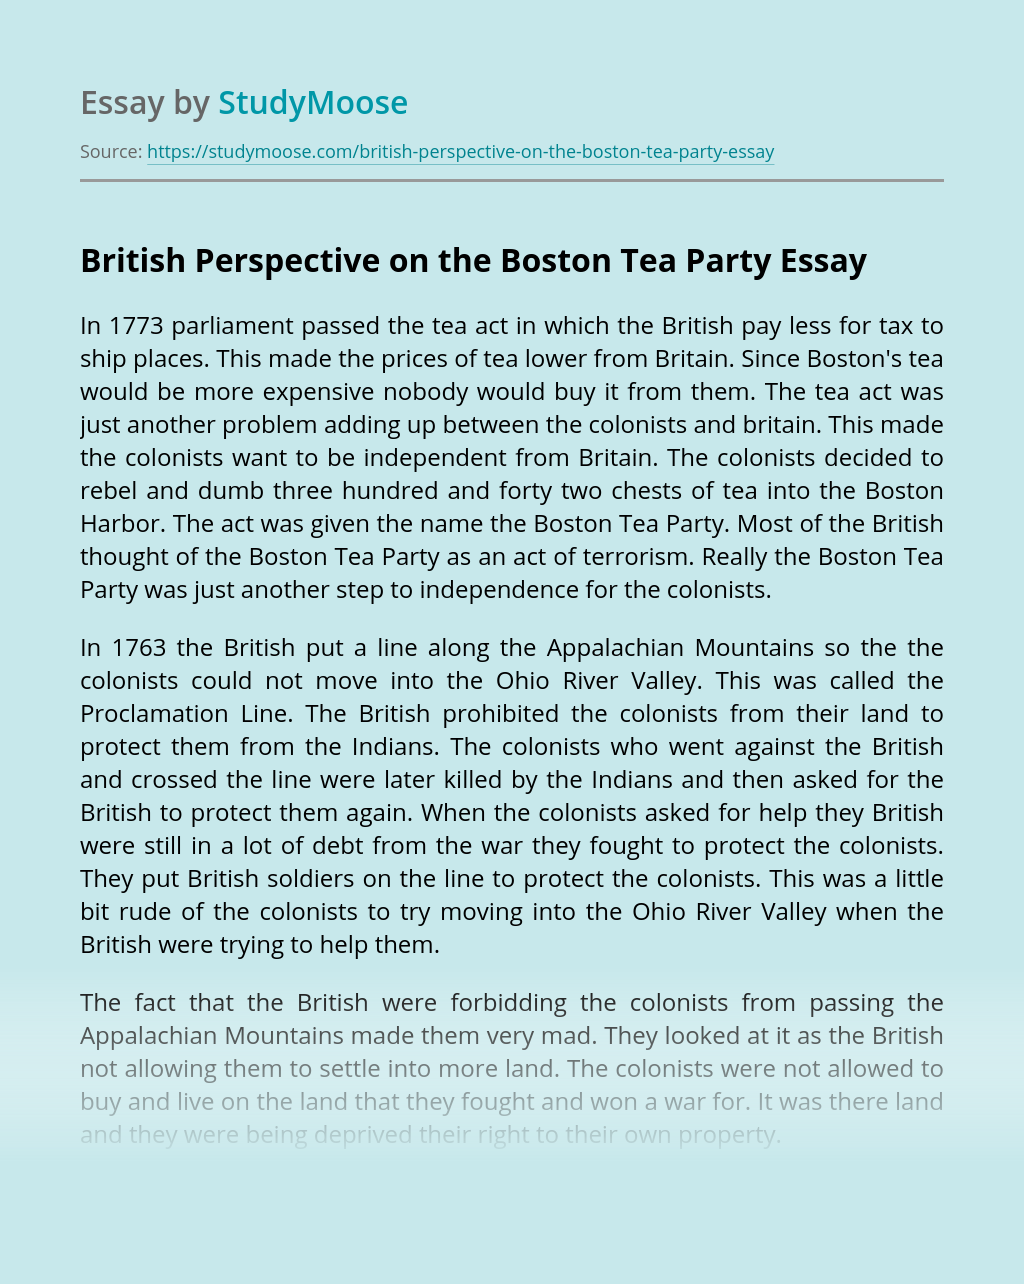 British Perspective on the Boston Tea Party